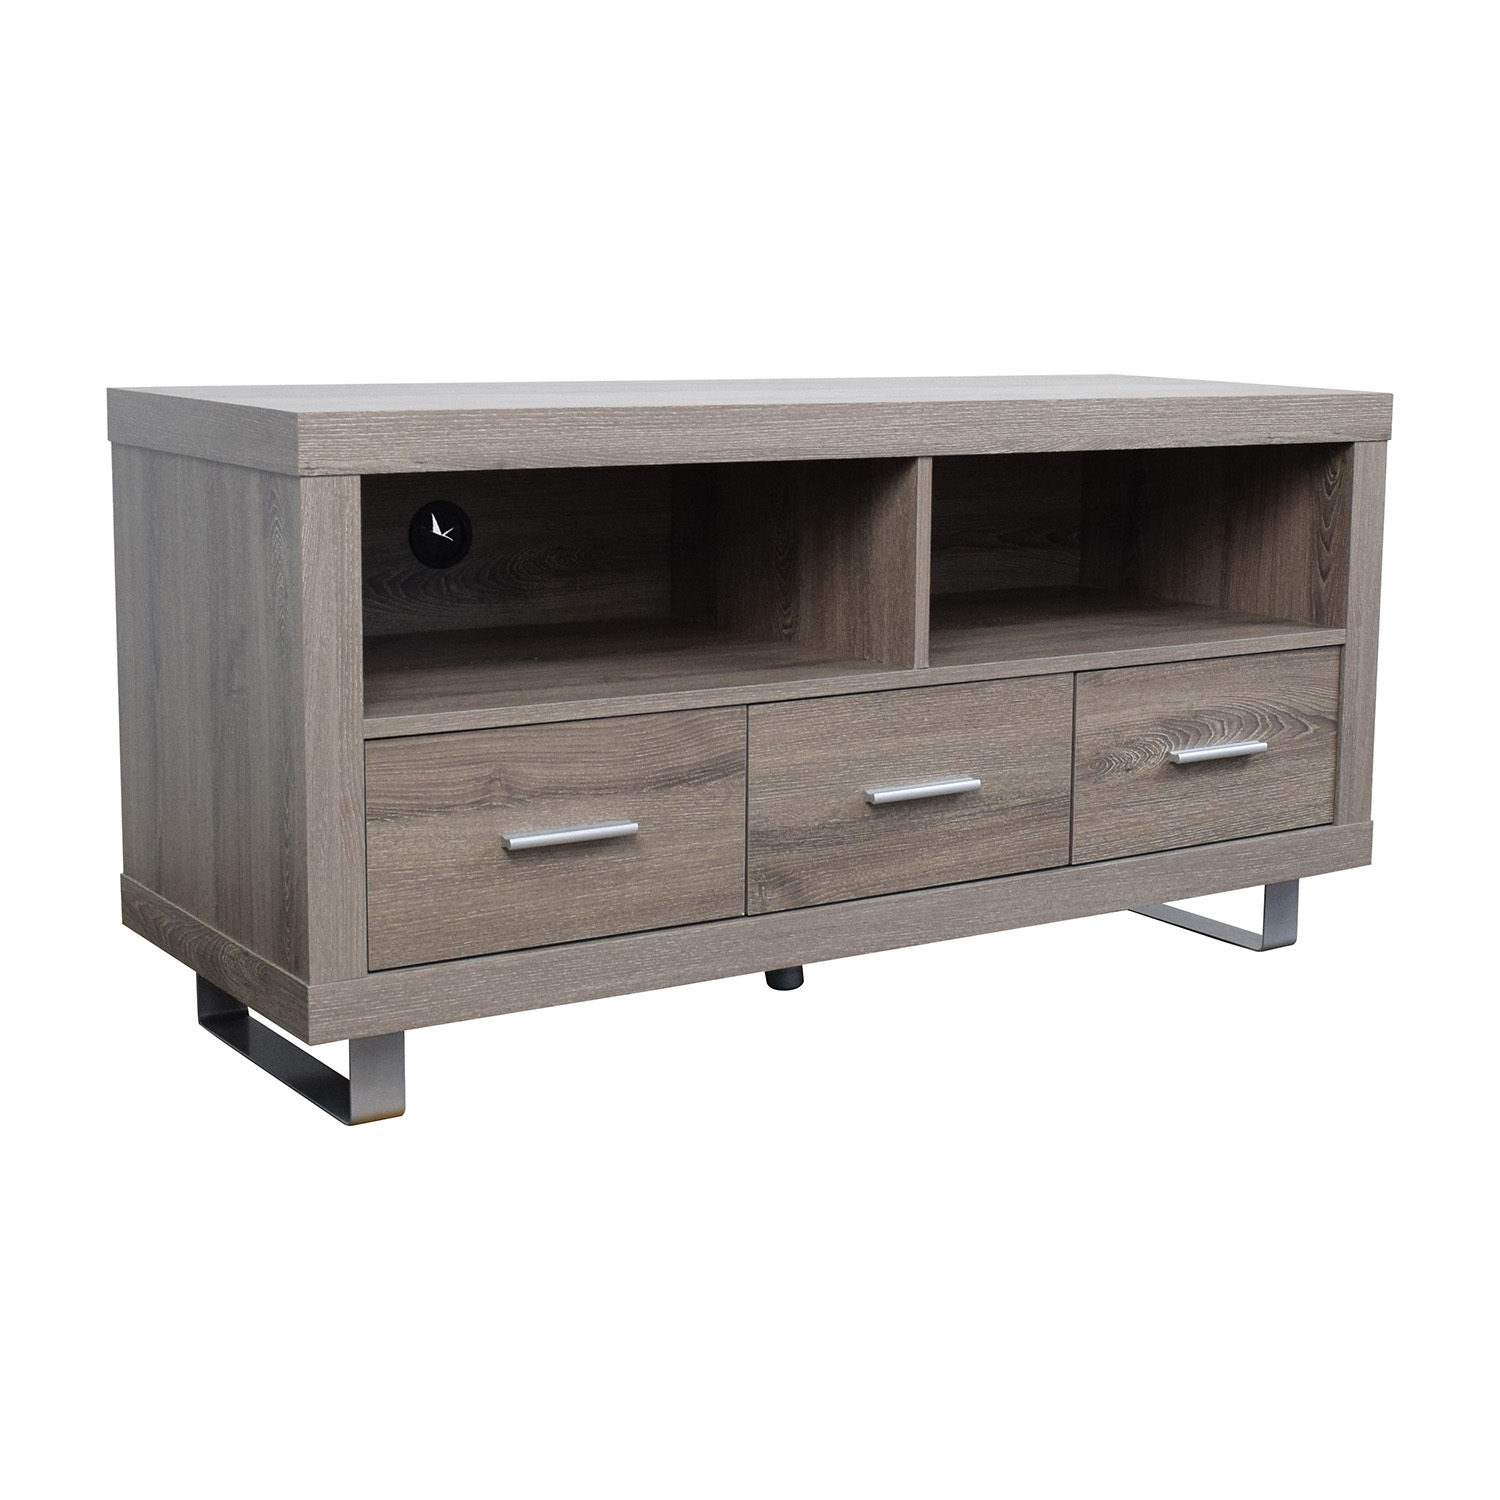 Monarch Specialties Inc. Monarch Specialties Light Brown TV Stand Media Units